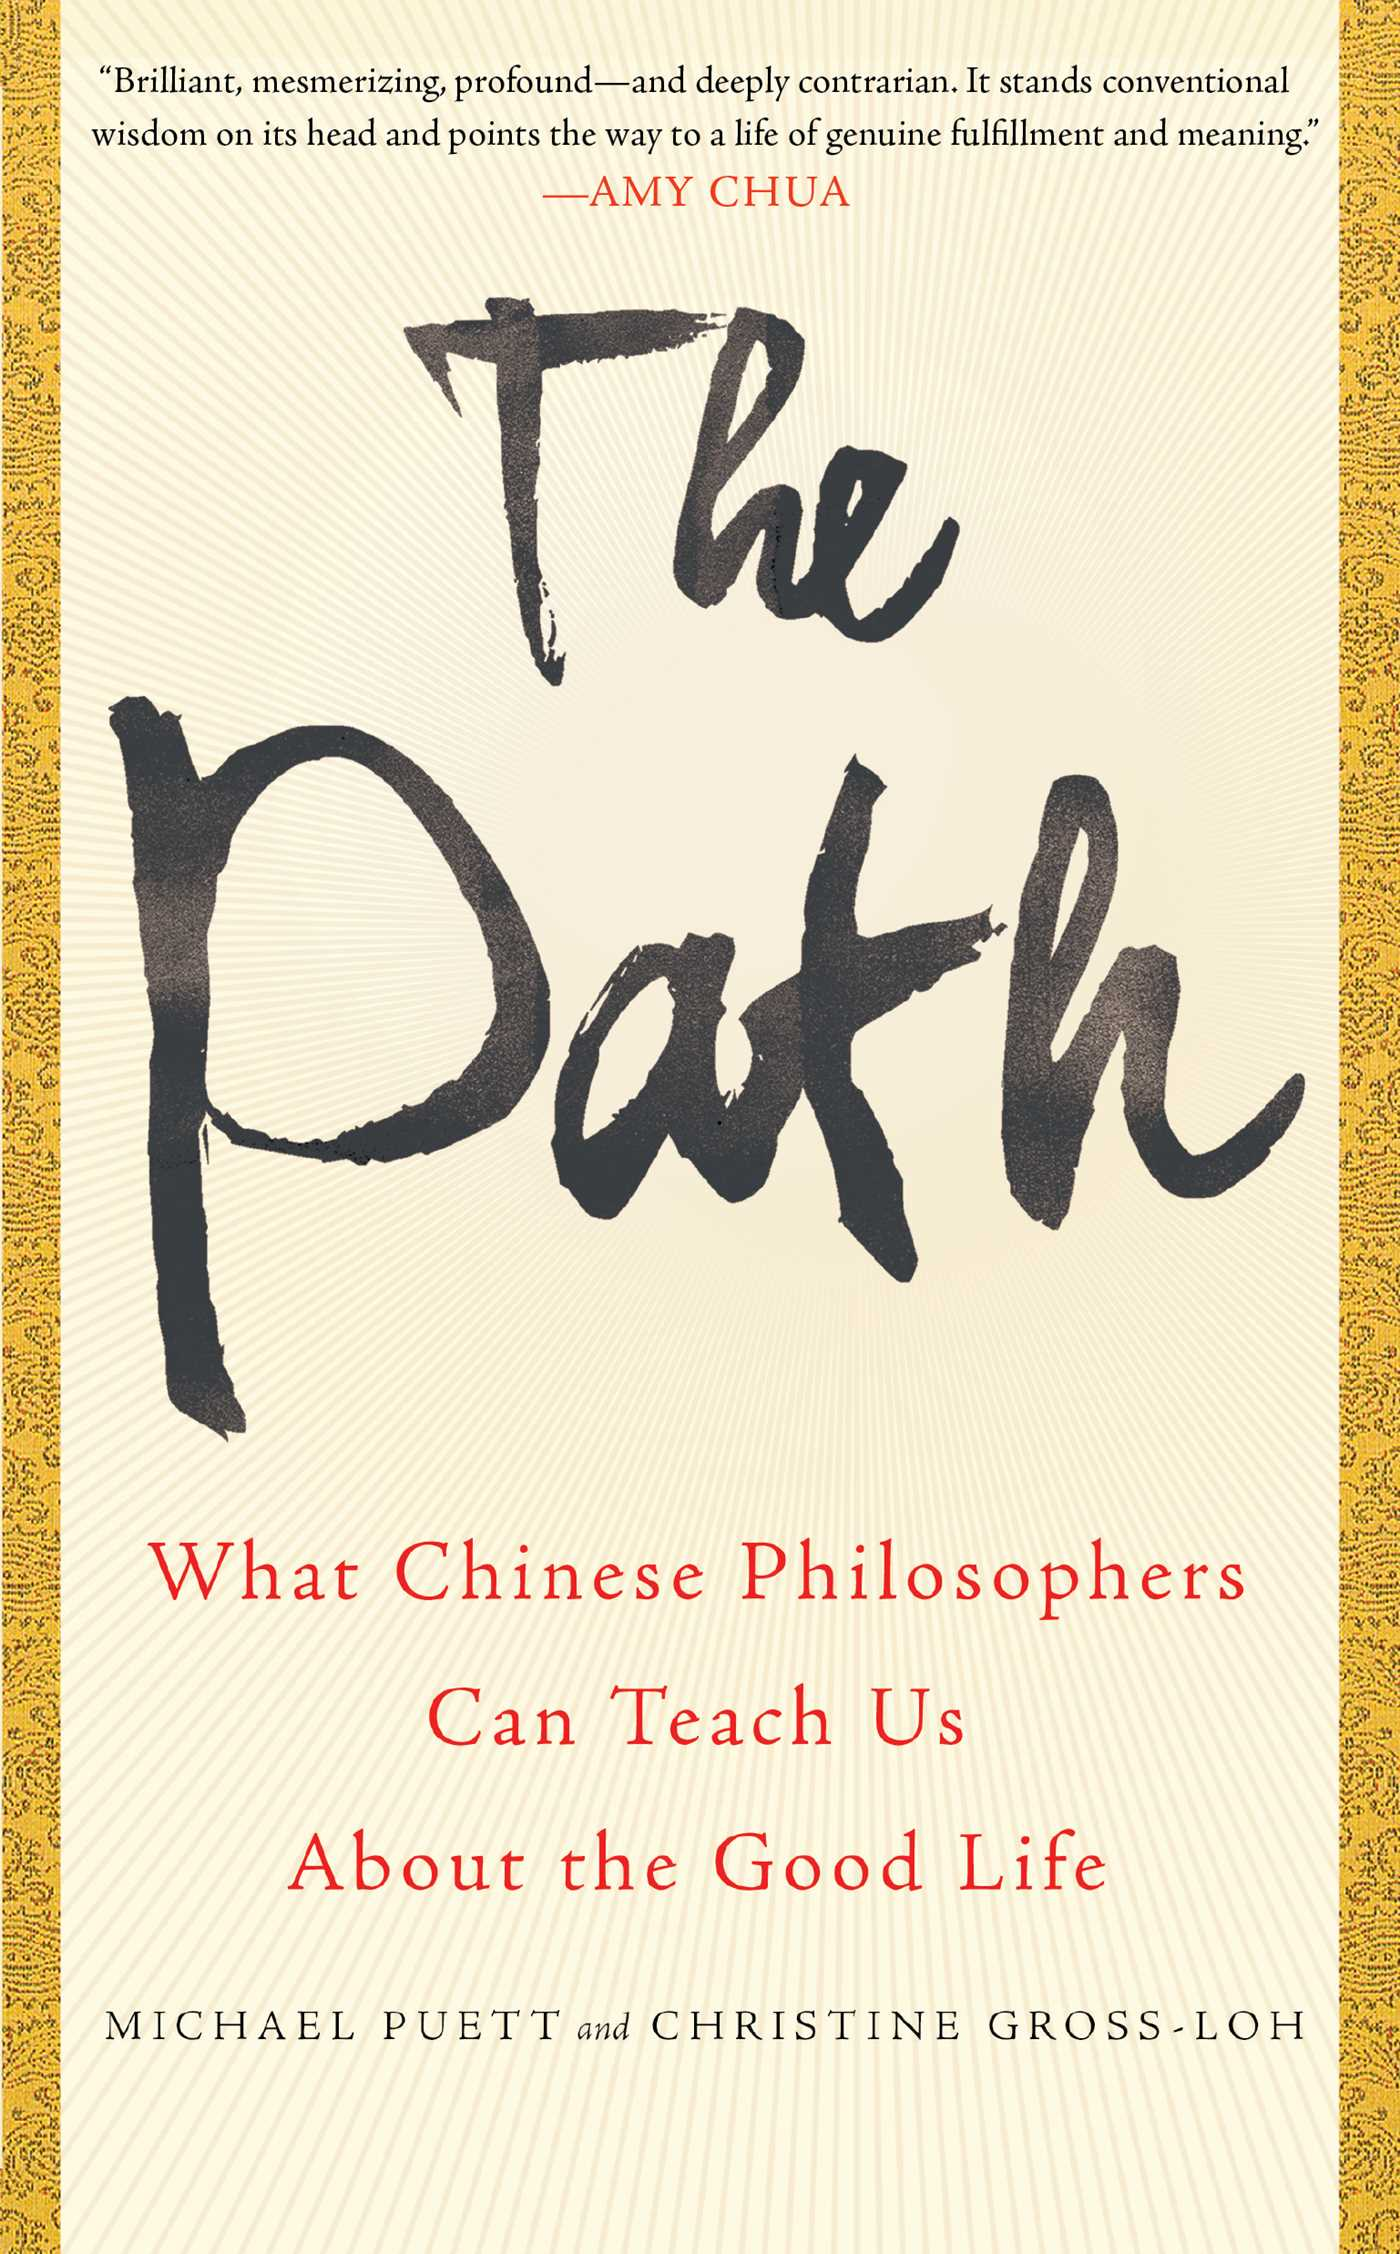 What is teaching Philosophical and political teachings